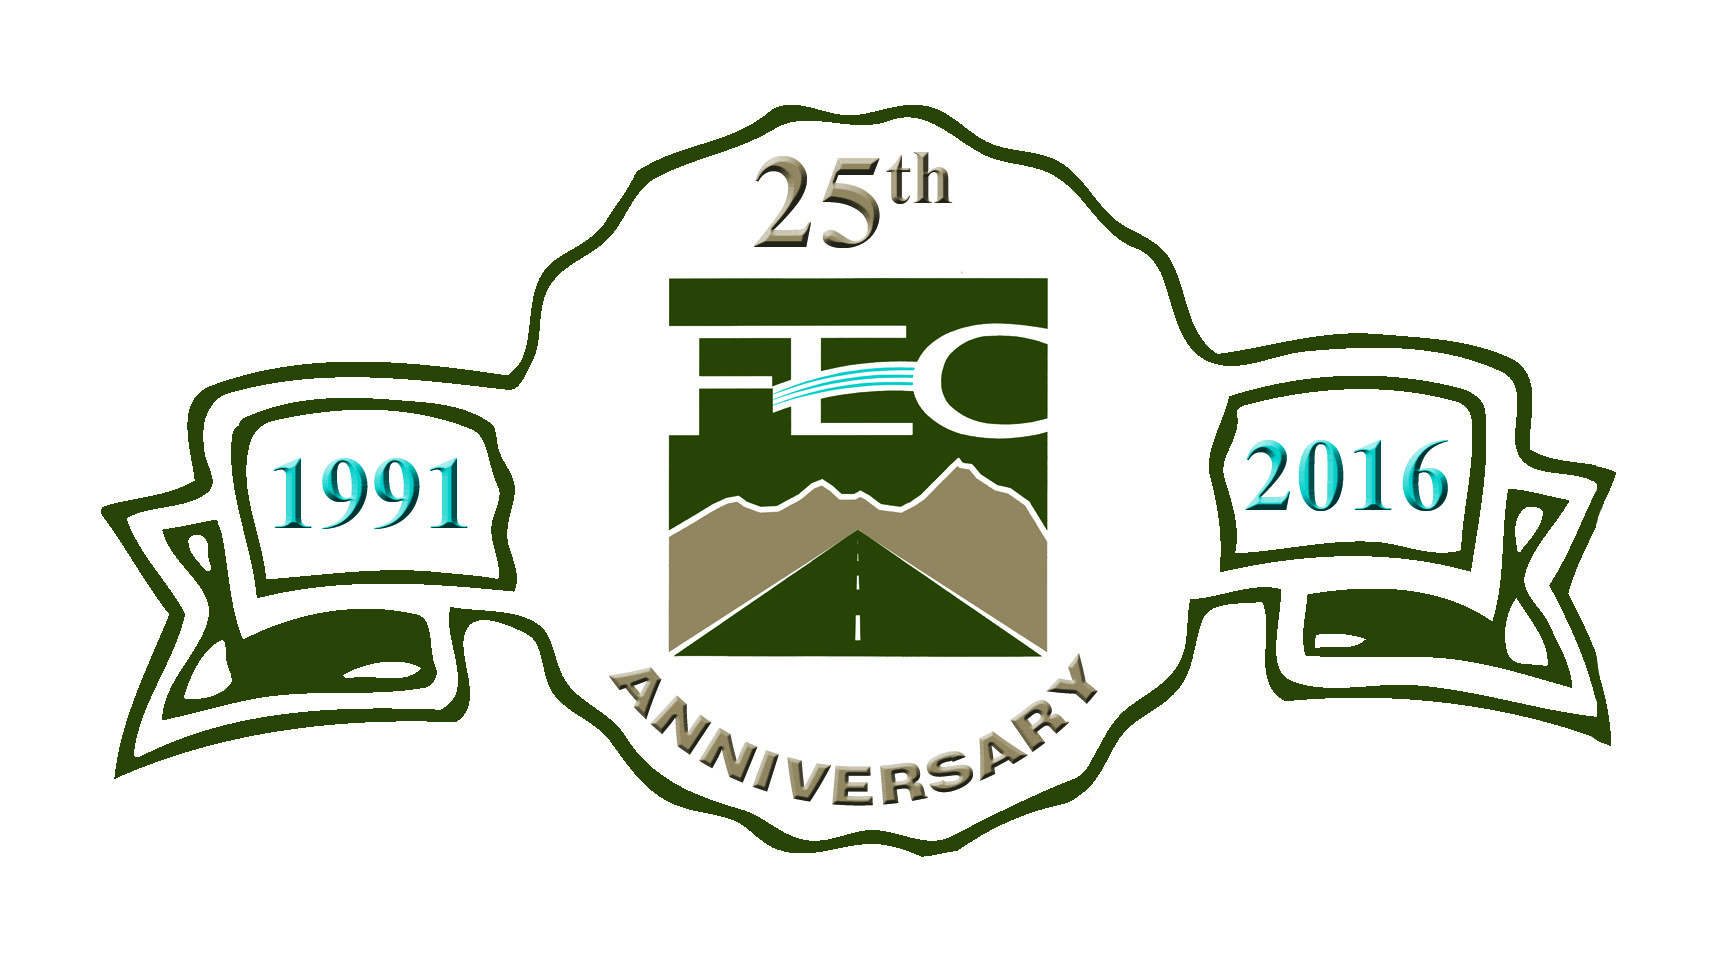 FEC is Celebrating 25 years!